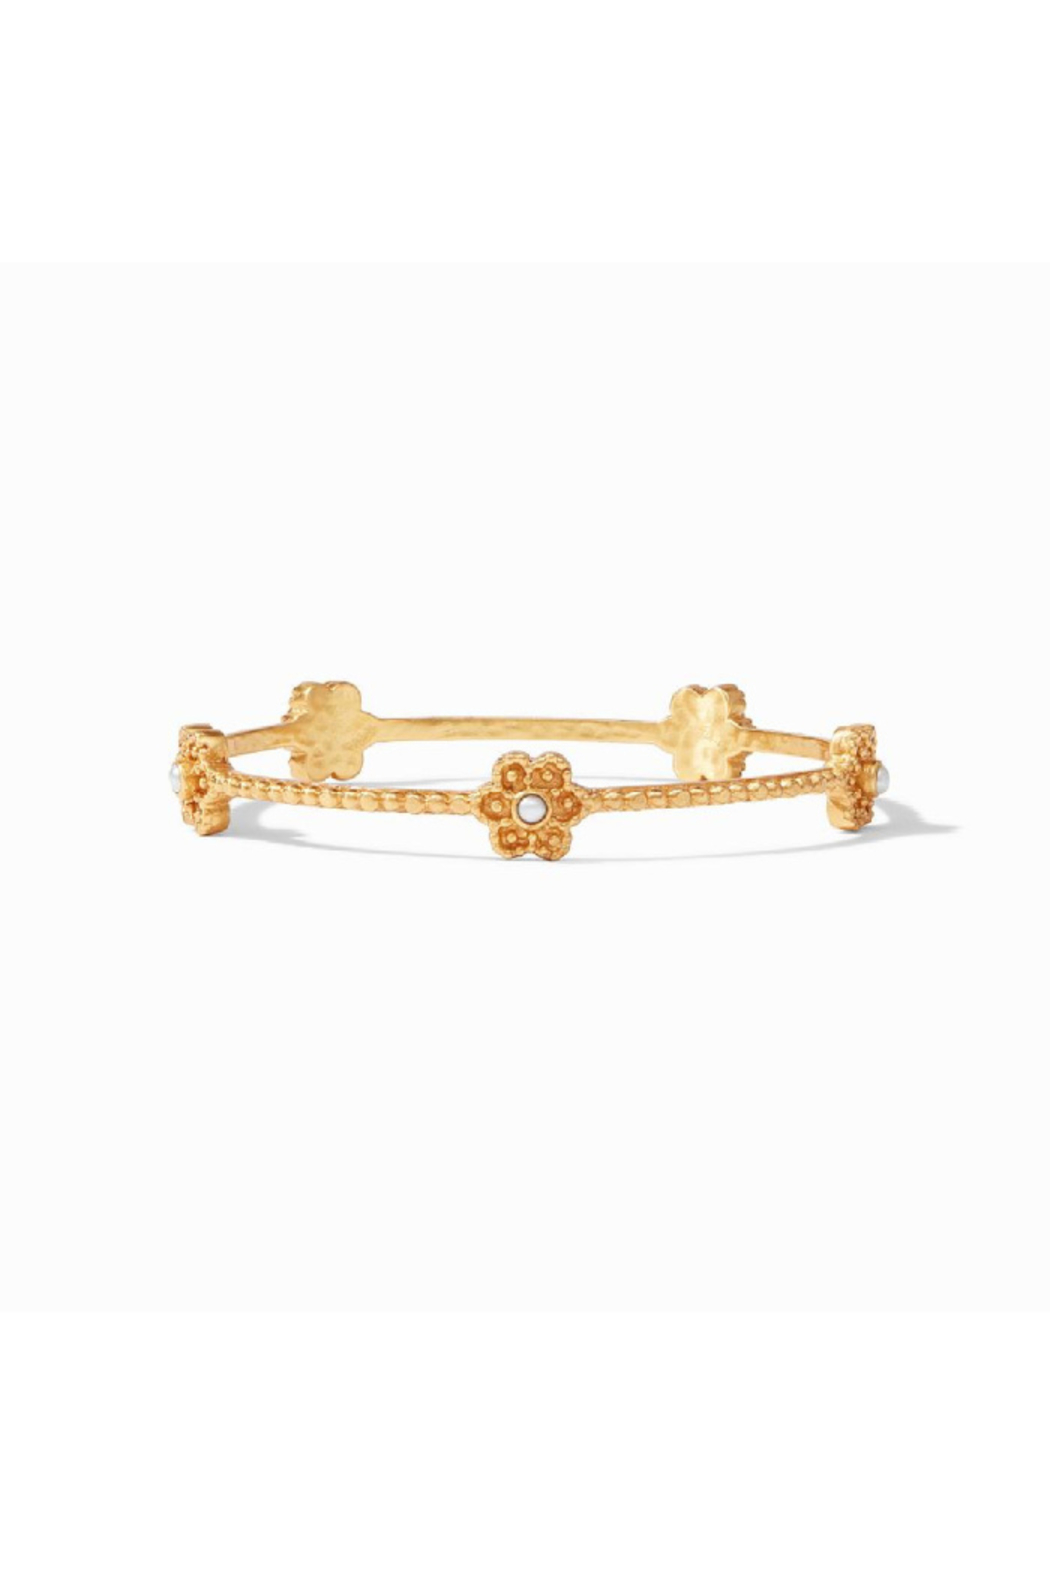 Julie Vos Colette Pearl Bangle Gold Pearl Small - Main Image